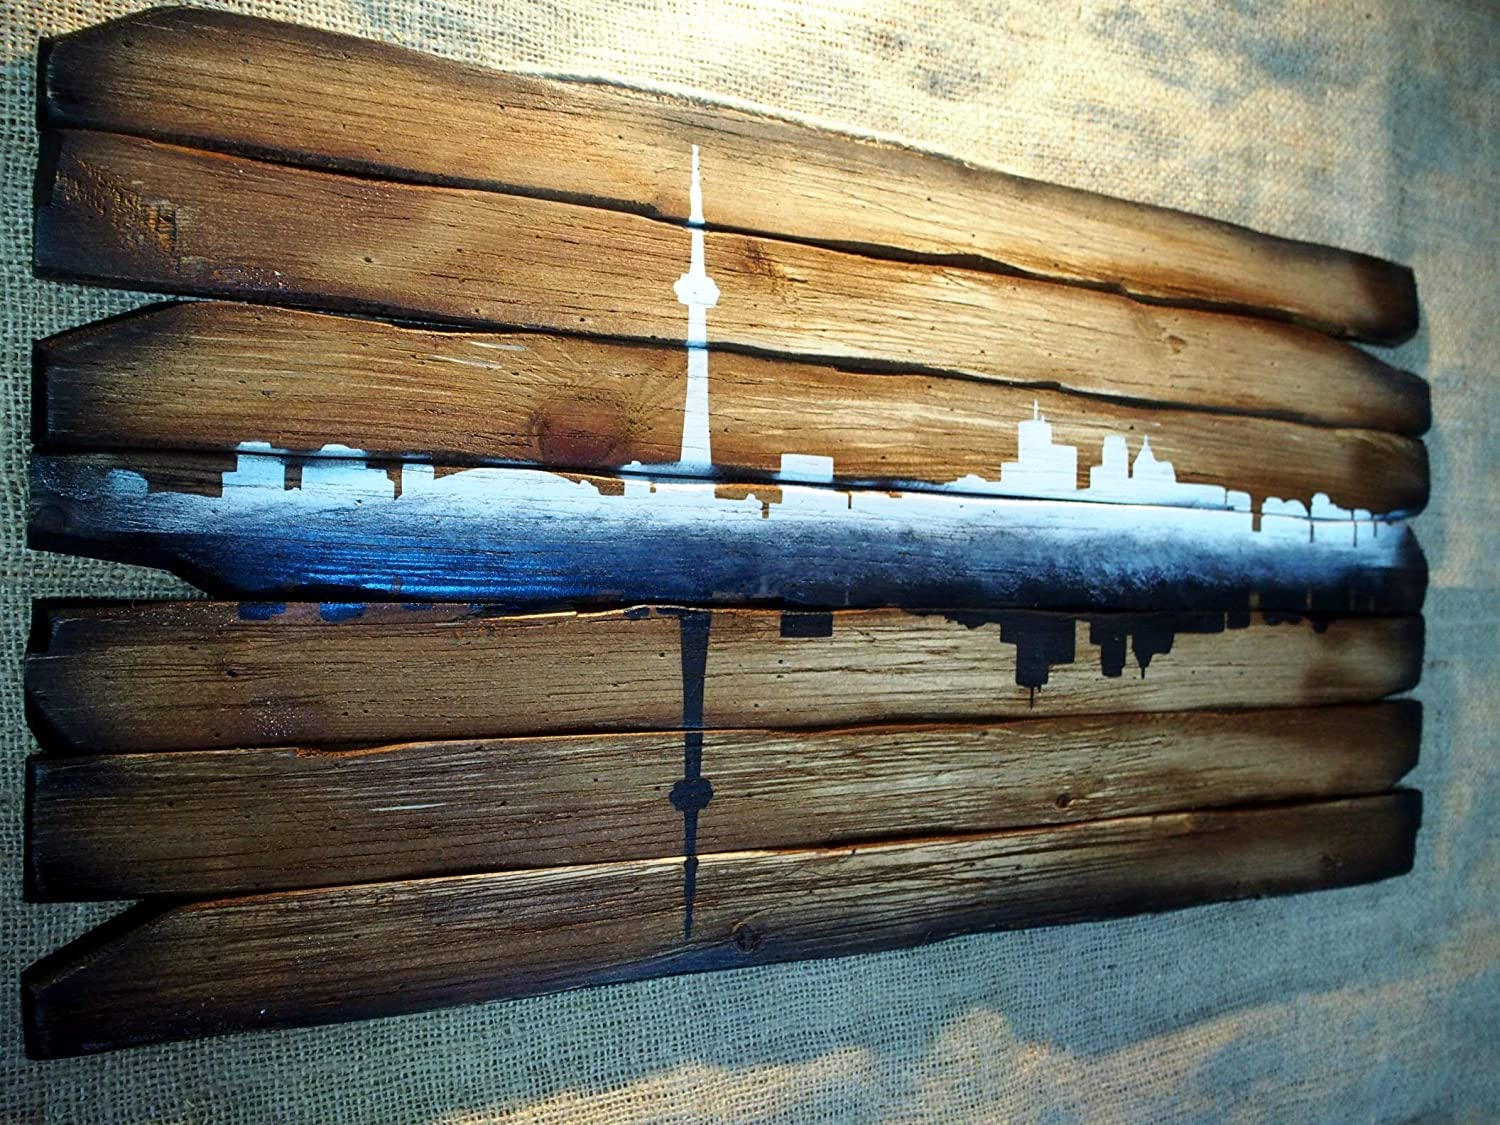 Toronto Skyline artwork | Personalized gift, Rustic home decor, city's silhouette | Hand-painted skyline on distressed wood boards